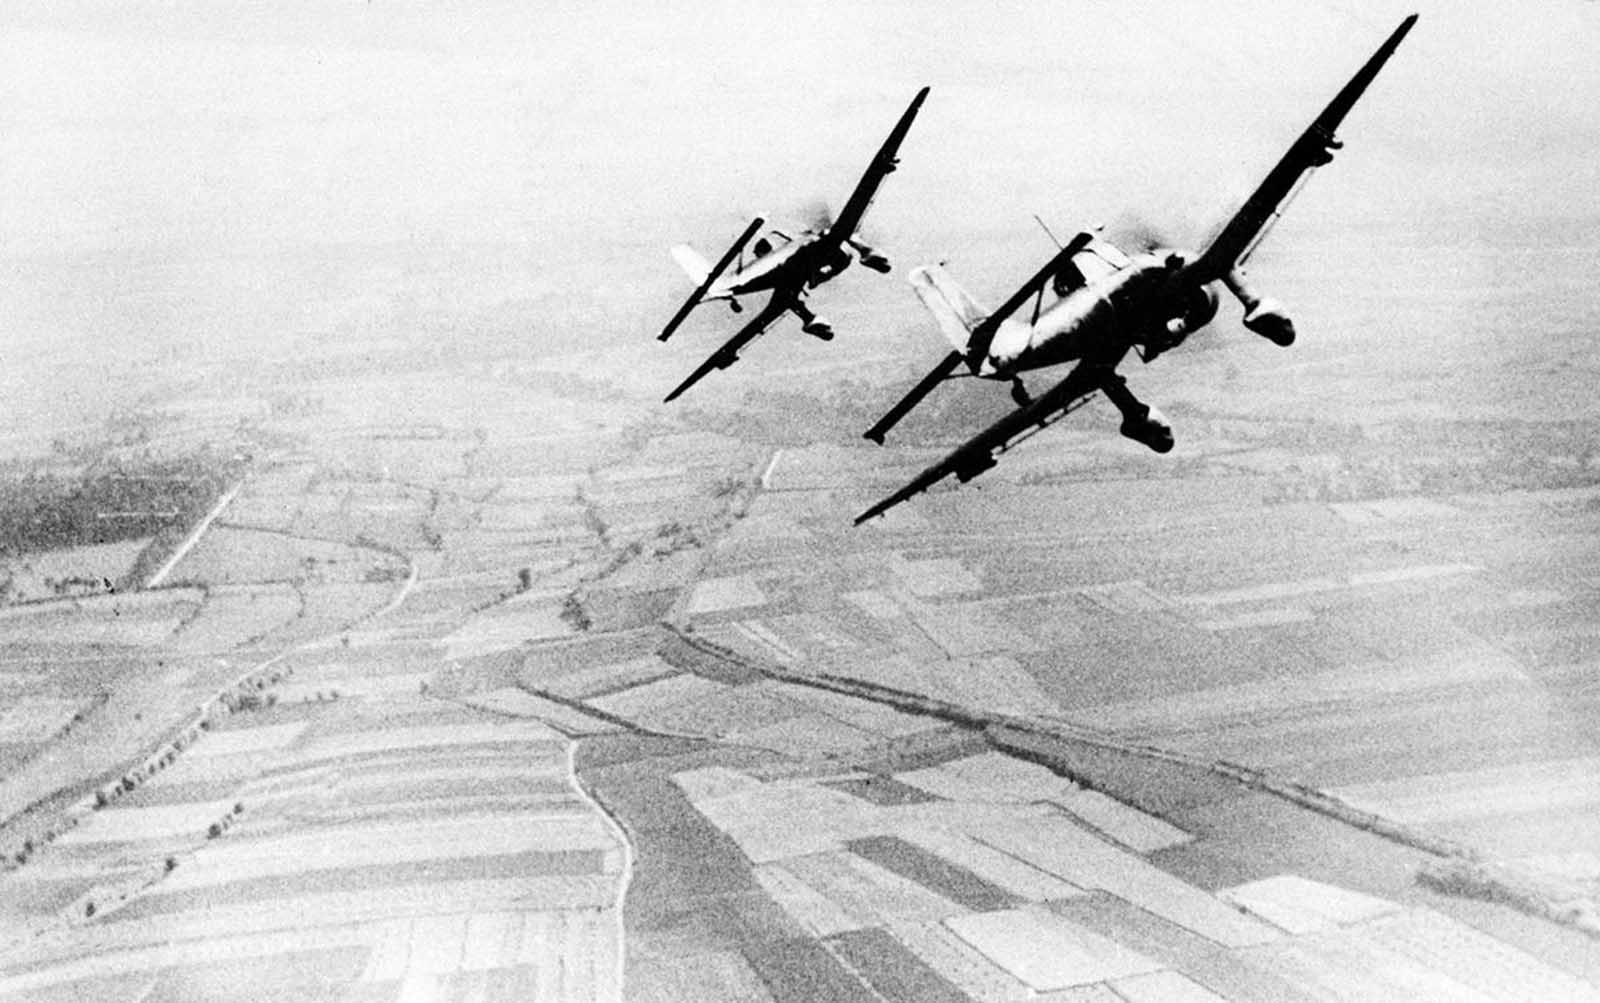 Two German Luftwaffe Ju 87 Stuka dive bombers return from an attack against the British south coast, during the Battle for Britain, on August 19, 1940.